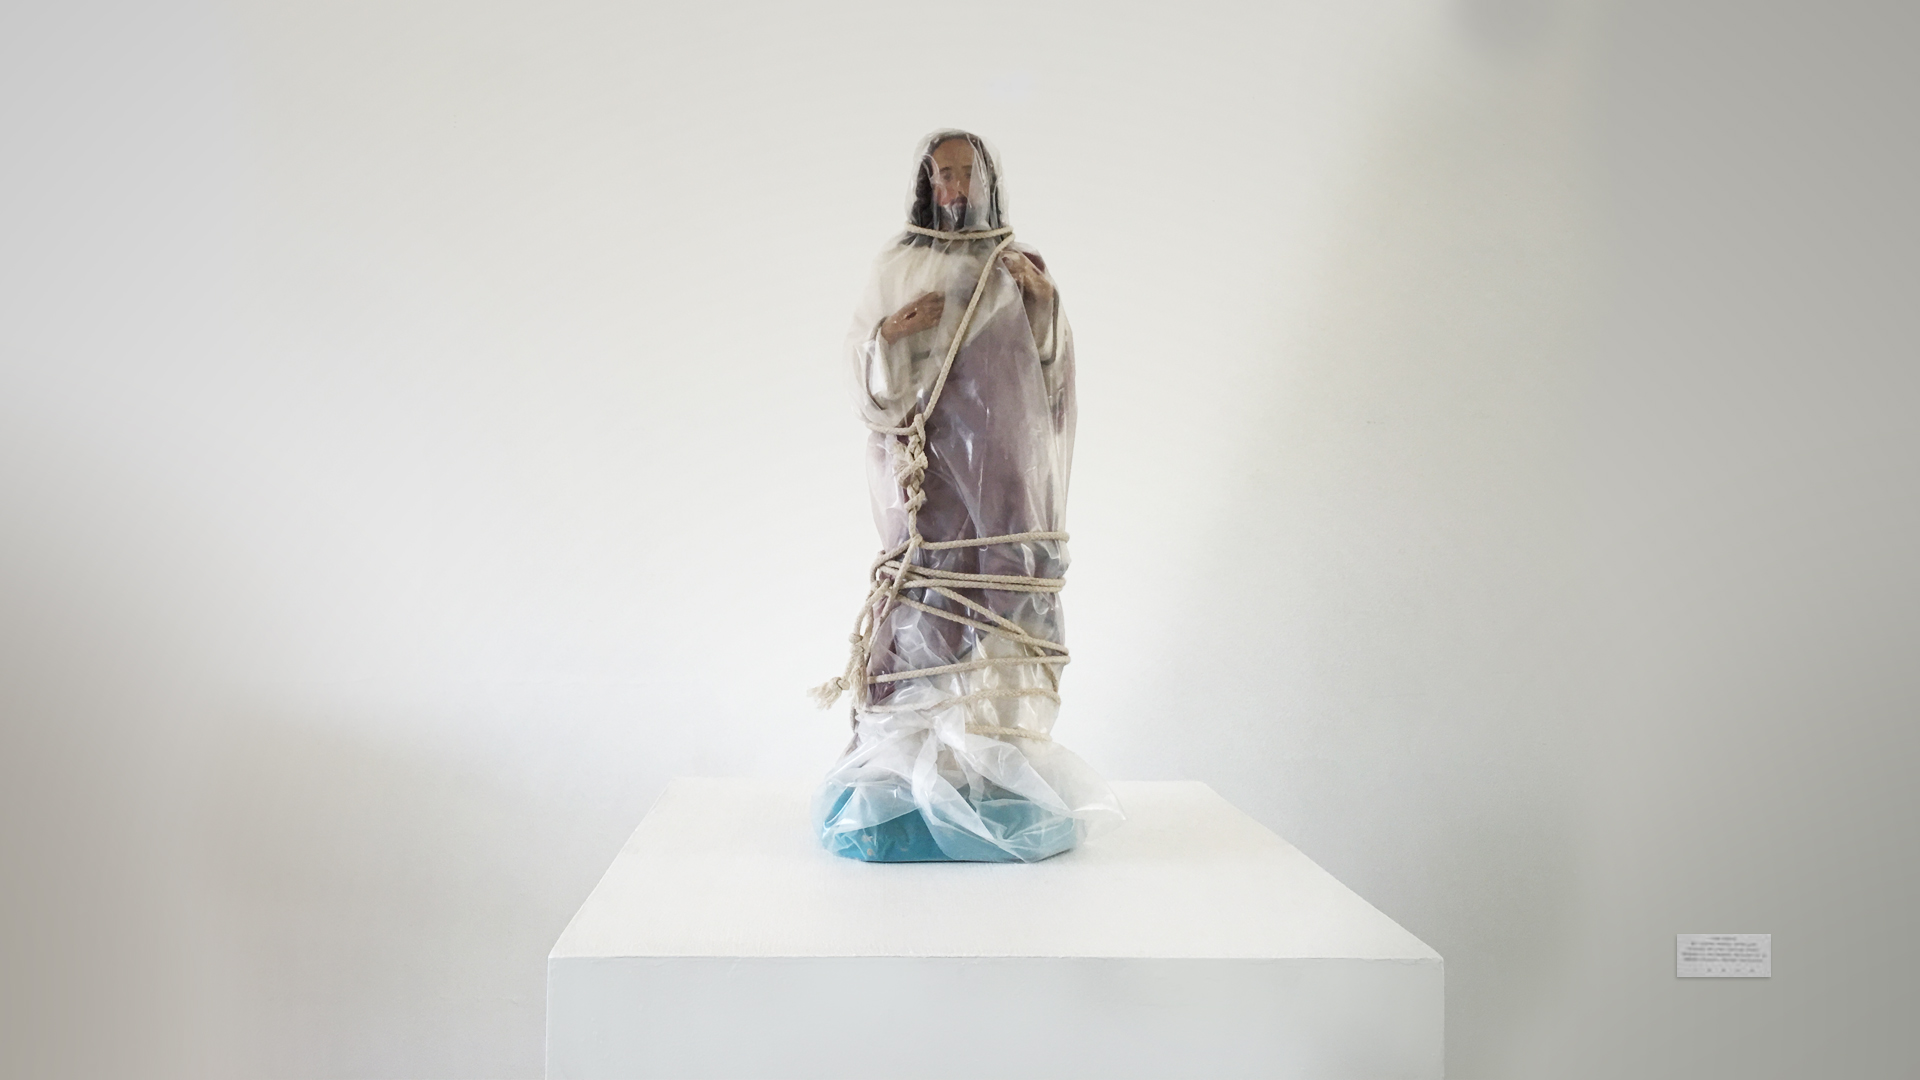 WRAPPED JESUS INSTALLATION - concert, acrylic, visqueen, rope - dimension variable